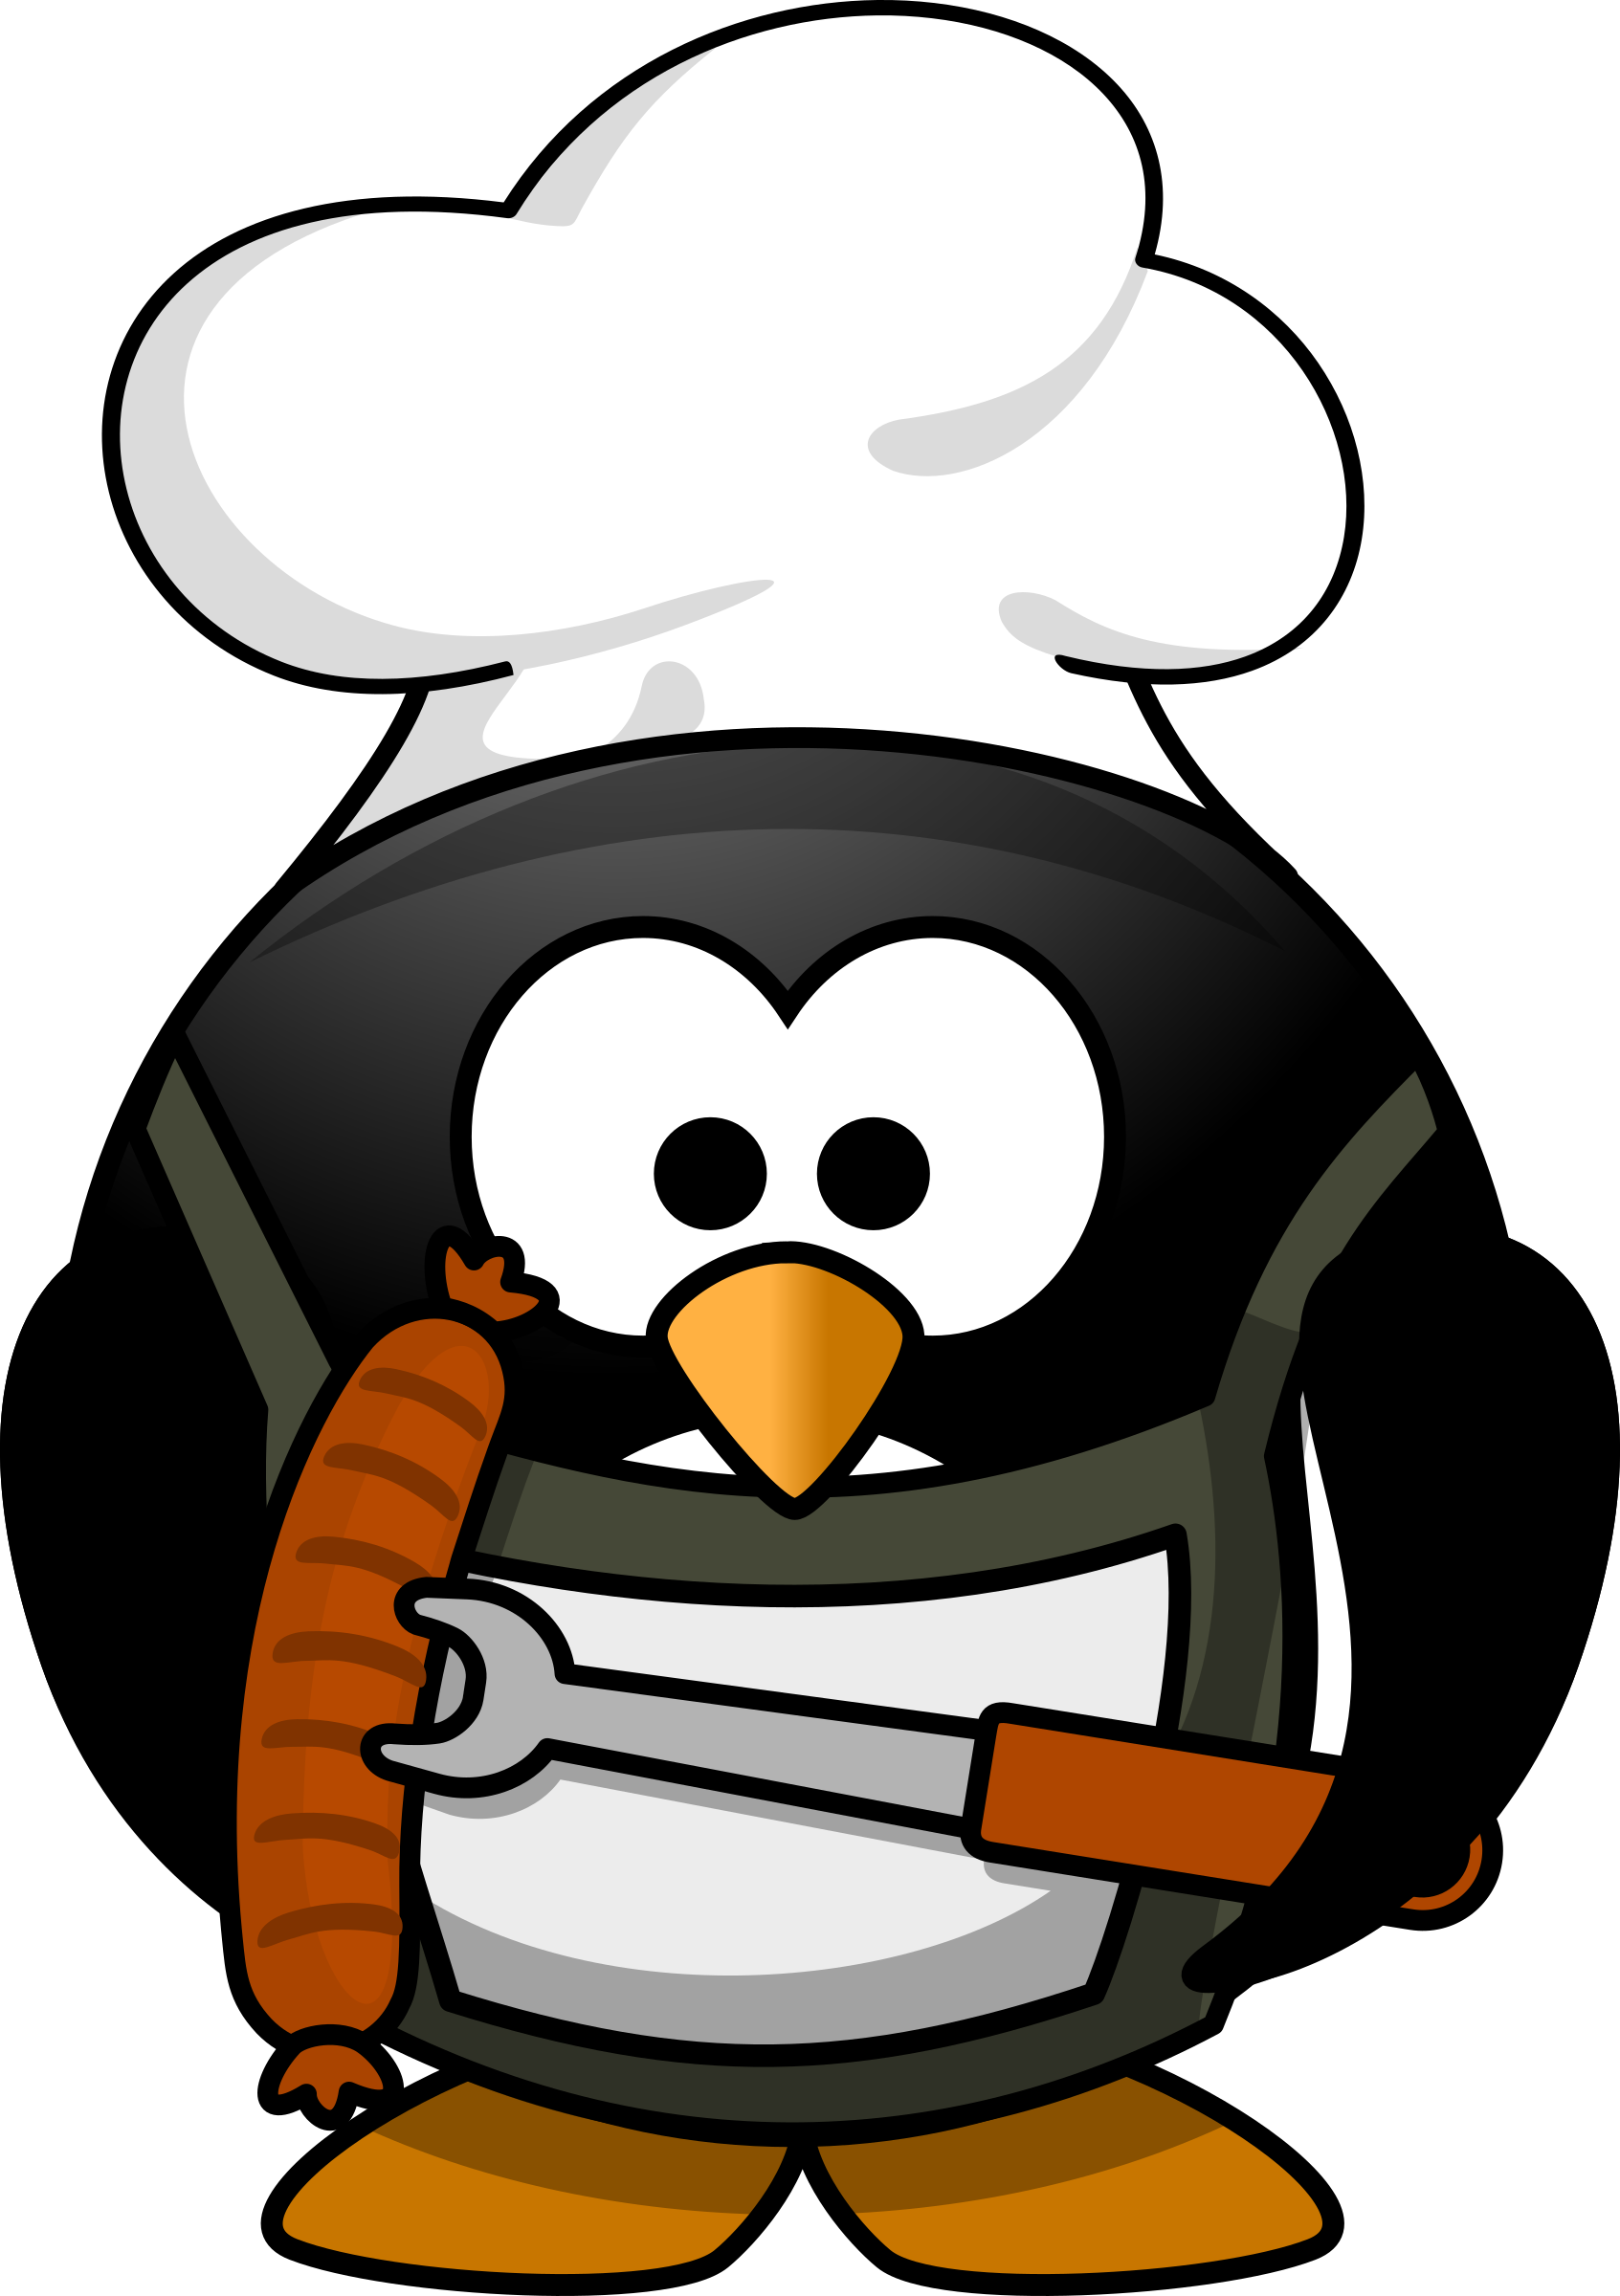 Stamp clipart bbq. Free chef penguin high